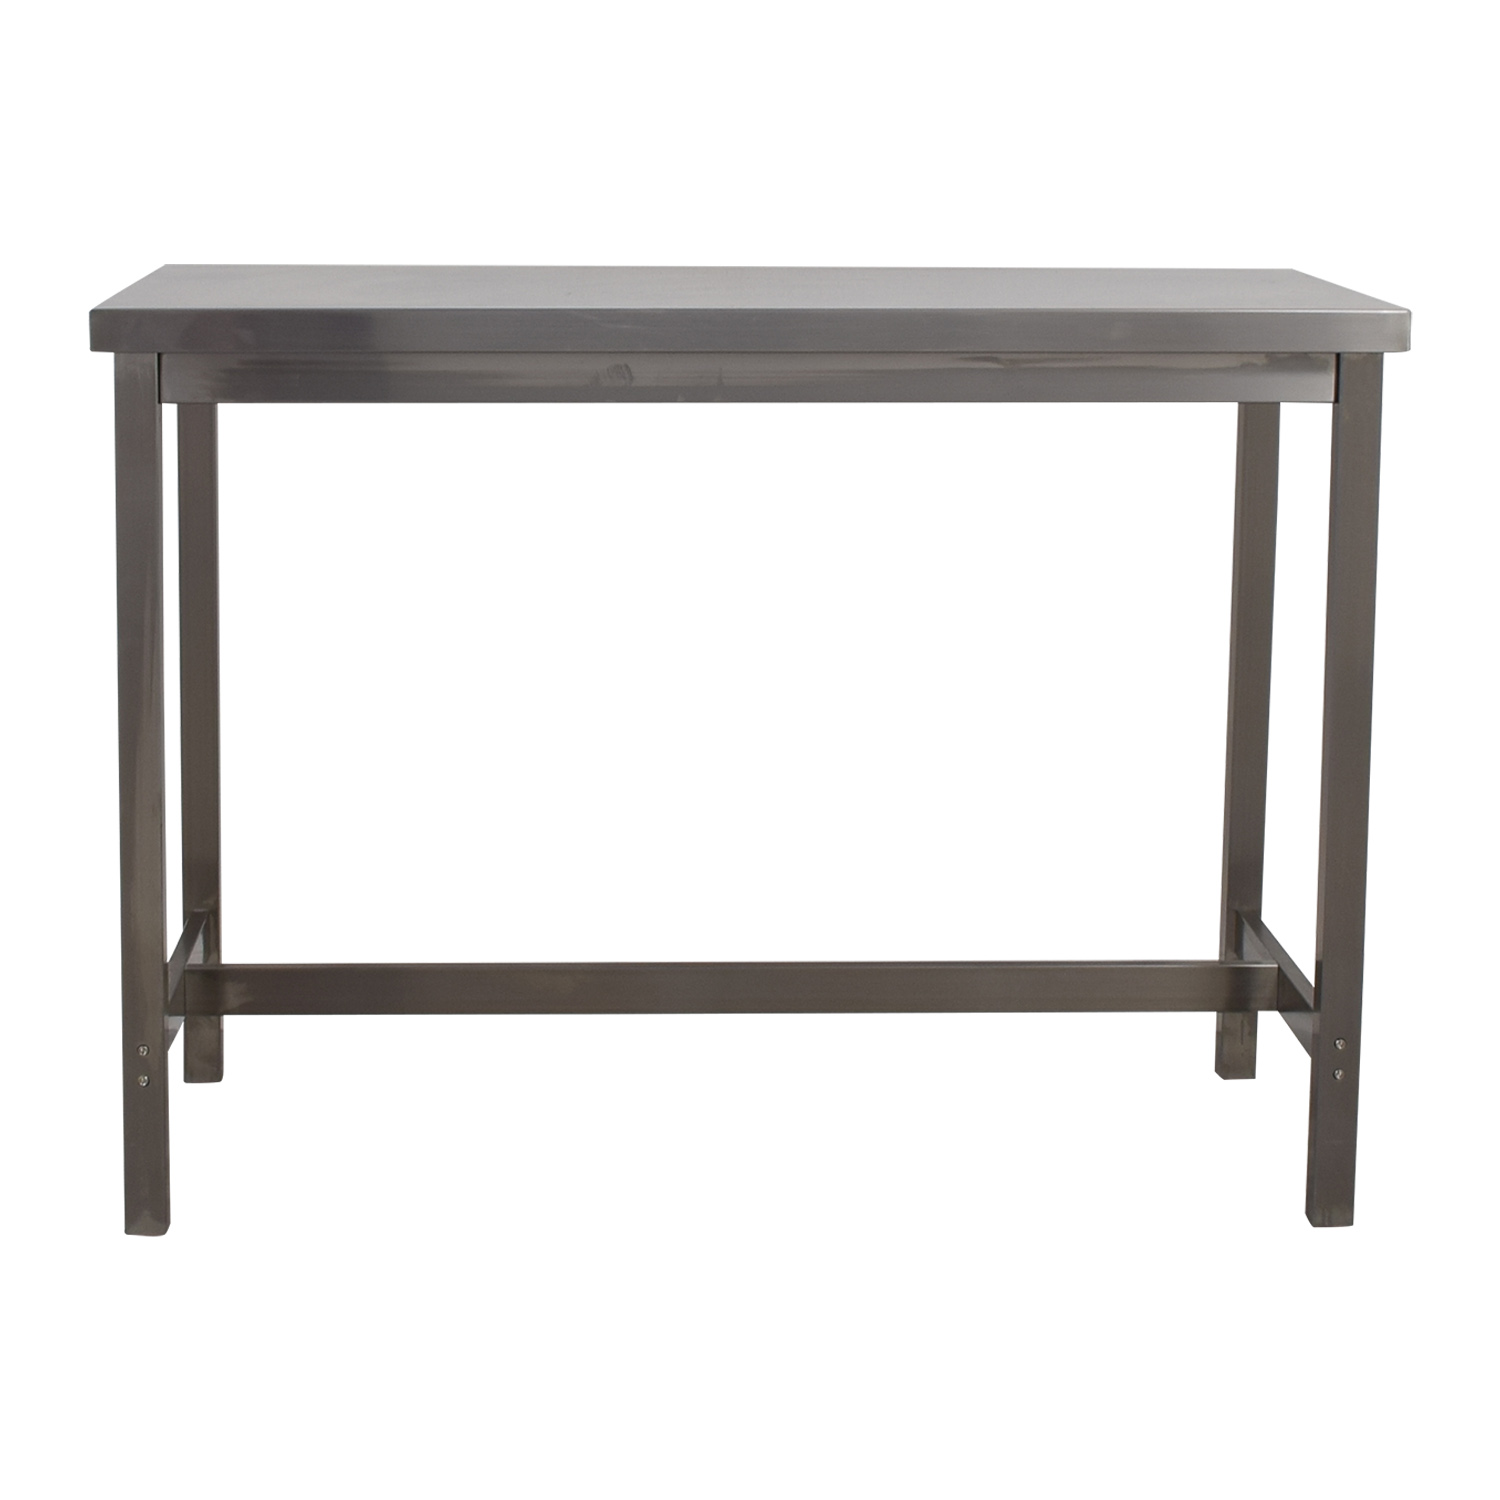 Stainless Steel Chrome Table price